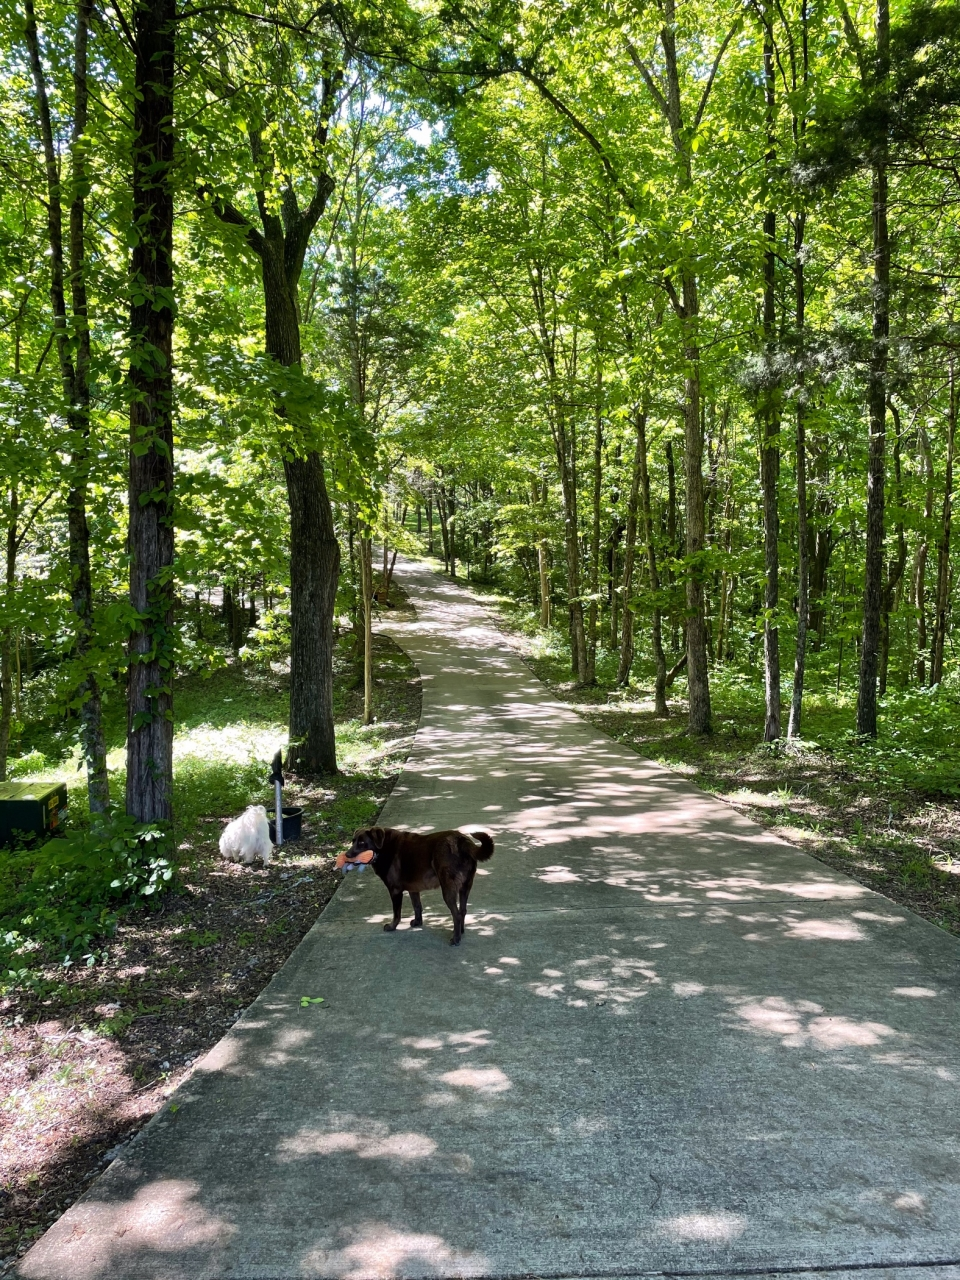 Afternoon walks with our furry friends, Zoey and Snowball, at the Sites home.